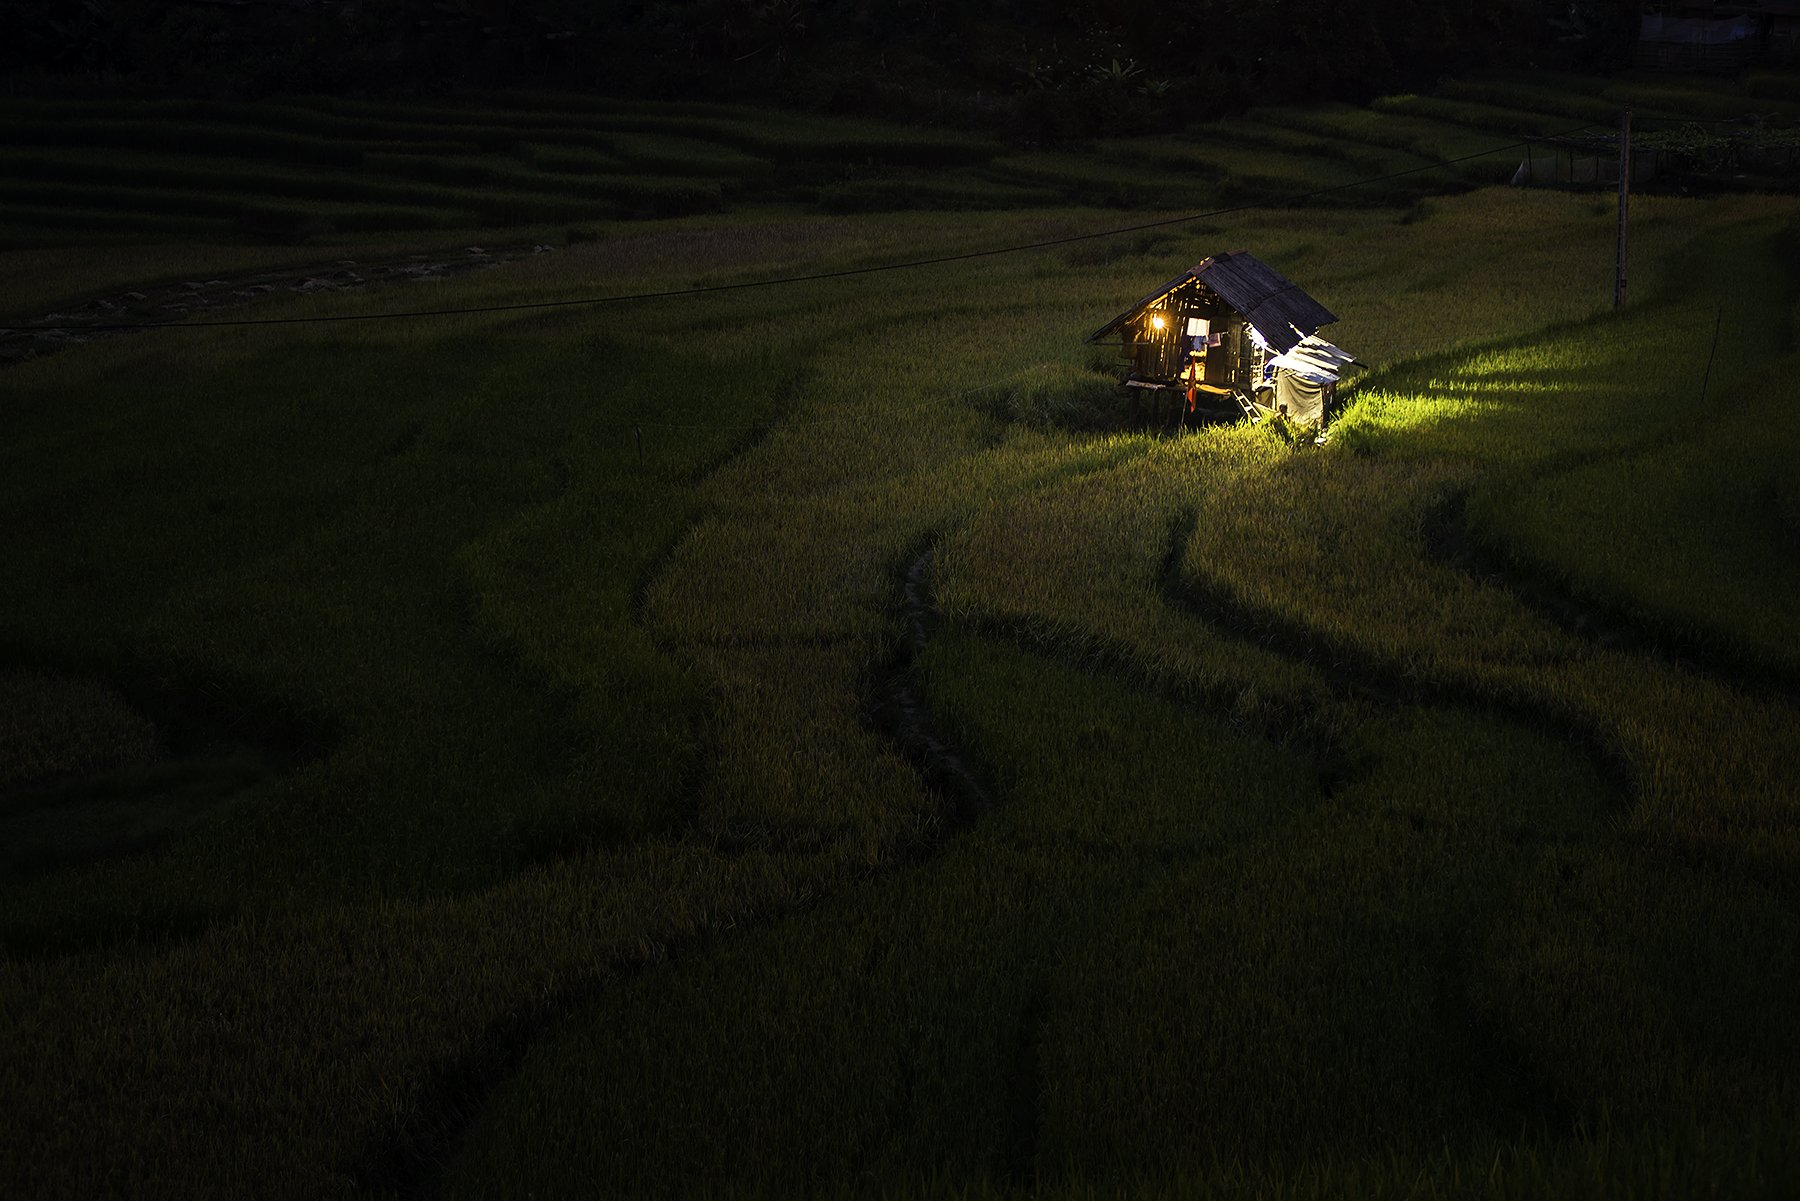 Asia, Asian, Field, Landscape, Night, Nikon, Rice, Terraces rice field, Thailand, Vietnam, Saravut Whanset